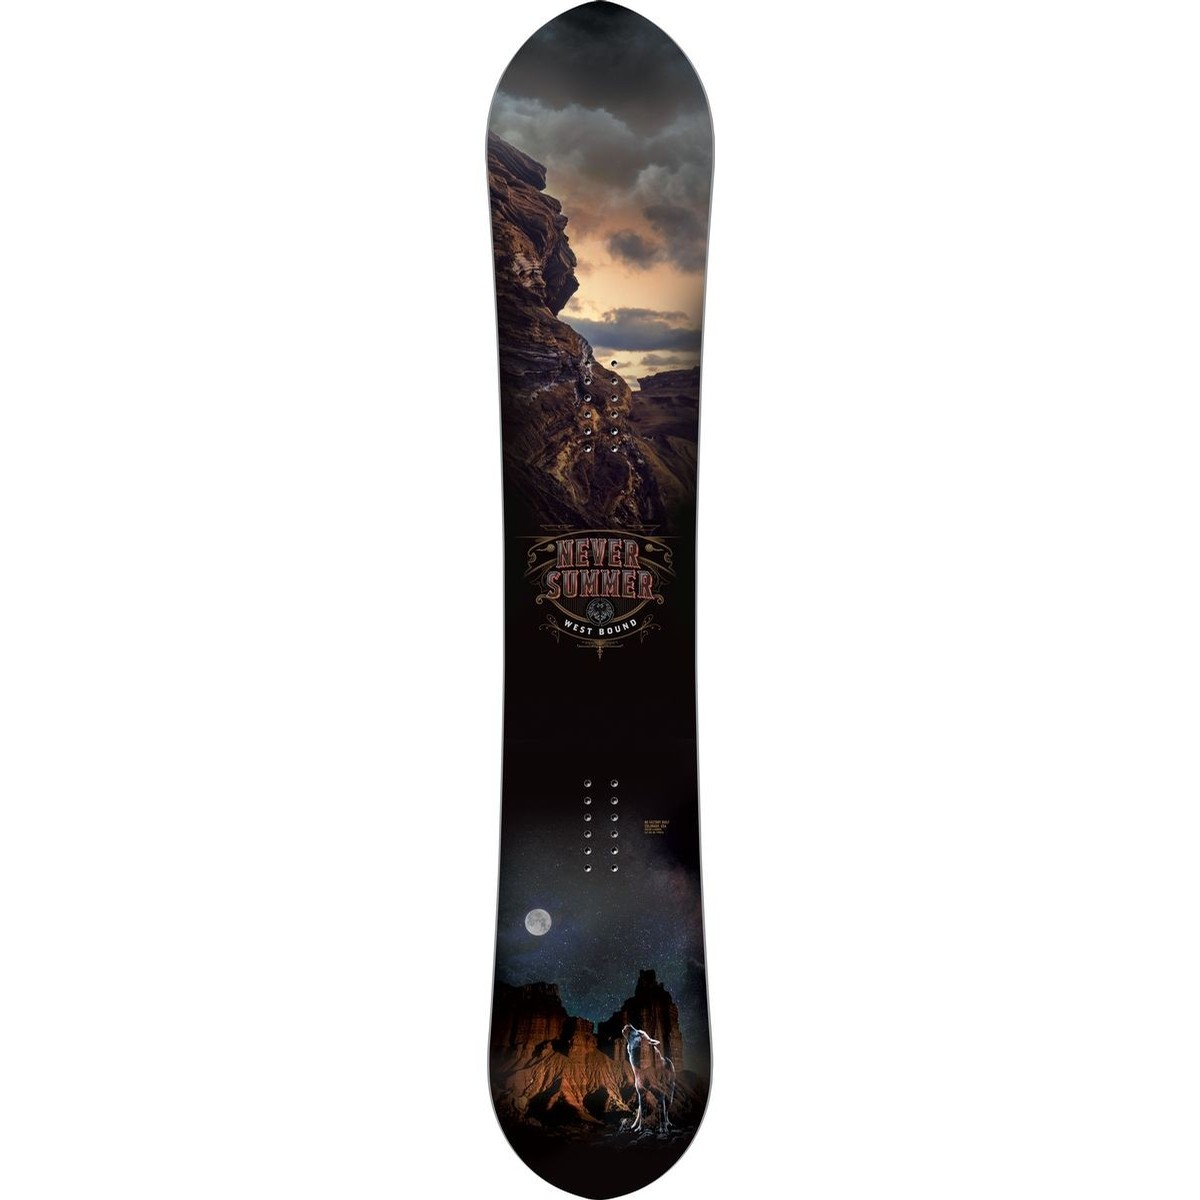 West Bound Snowboard (2019-20)